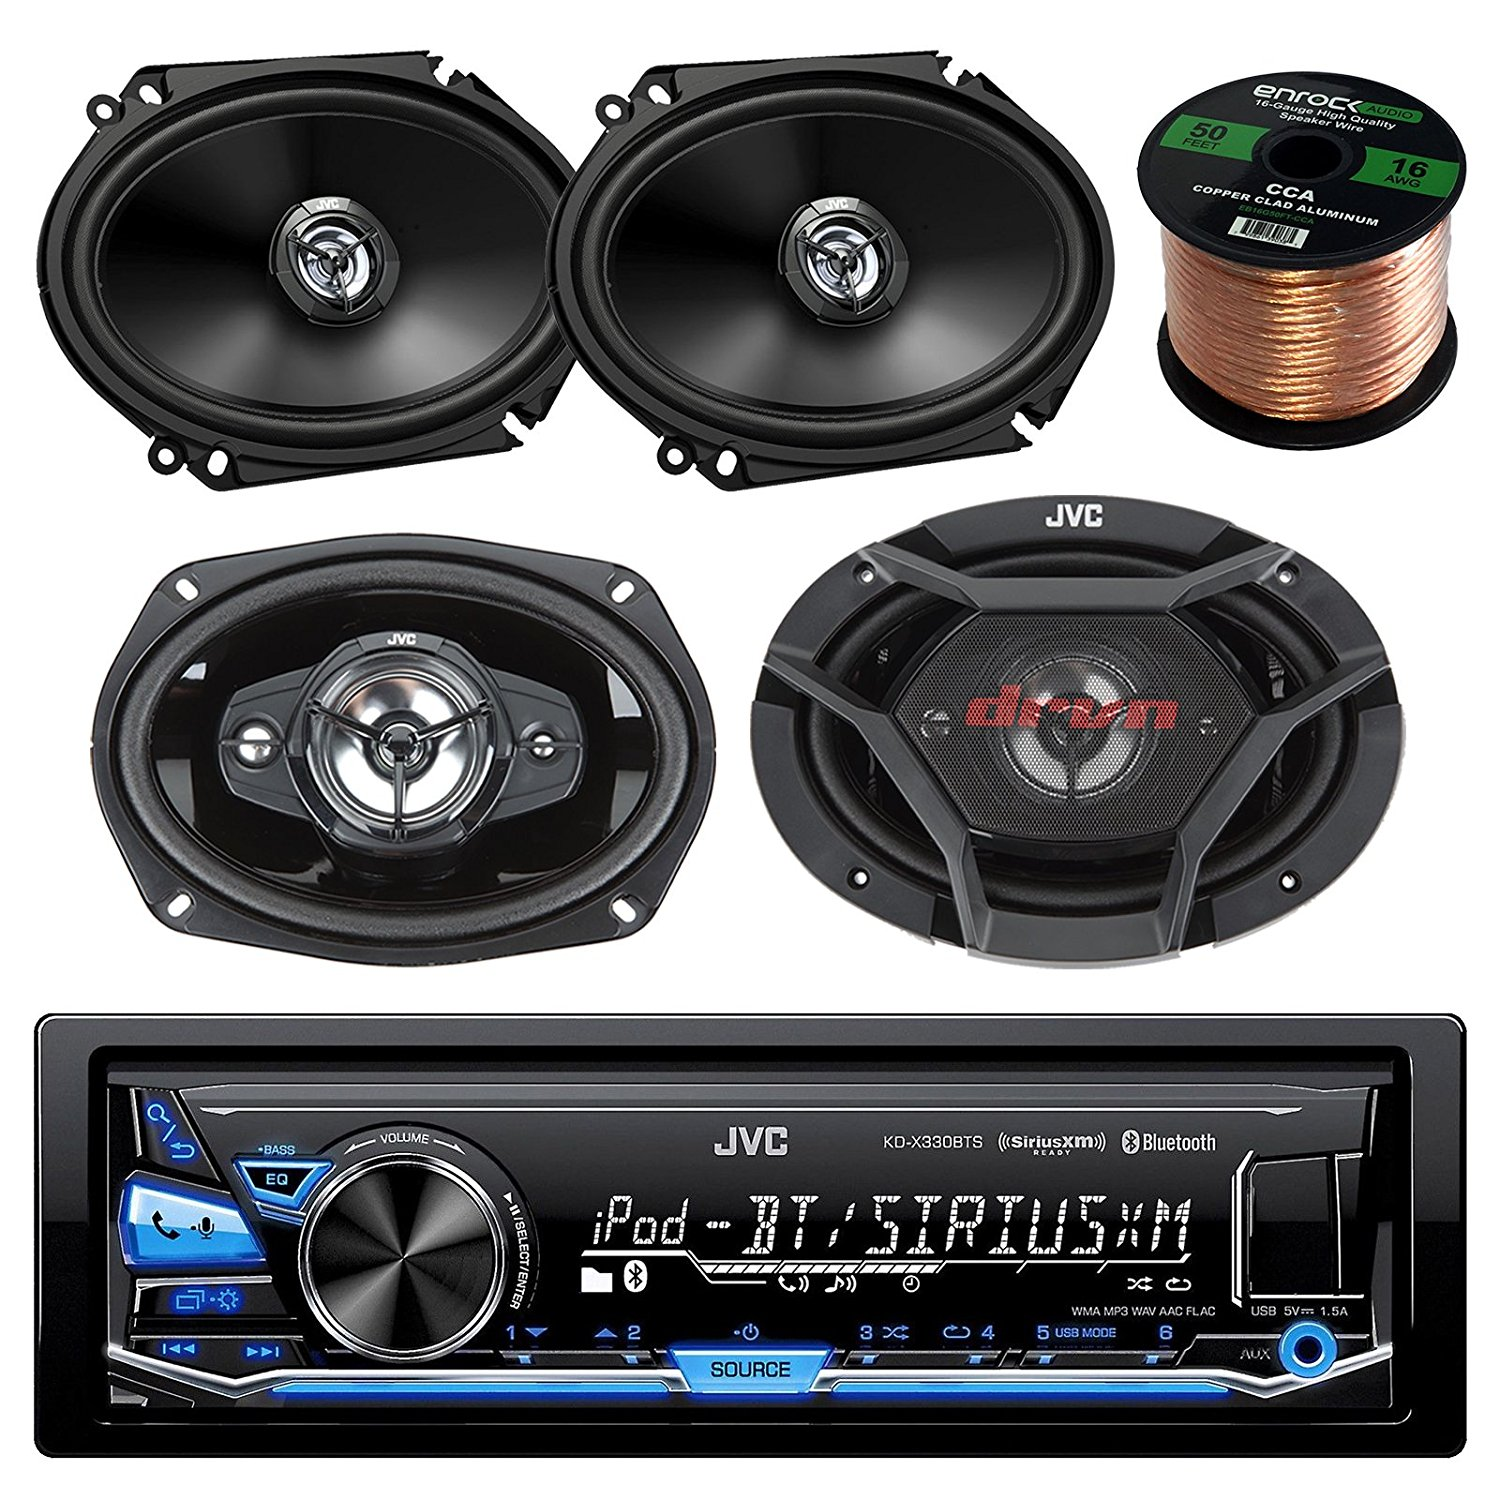 "JVC KD-X340BTS AM/FM USB AUX Car Stereo Receiver Bundle Combo With 2x CS-DR6820 300-Watt 6x8"" Inch Vehicle Coaxial Speakers + 2x DR6930 6x9"" Inch 3-Way Audio Speakers + Enrock 50 Feet 16-Gauge Wire"